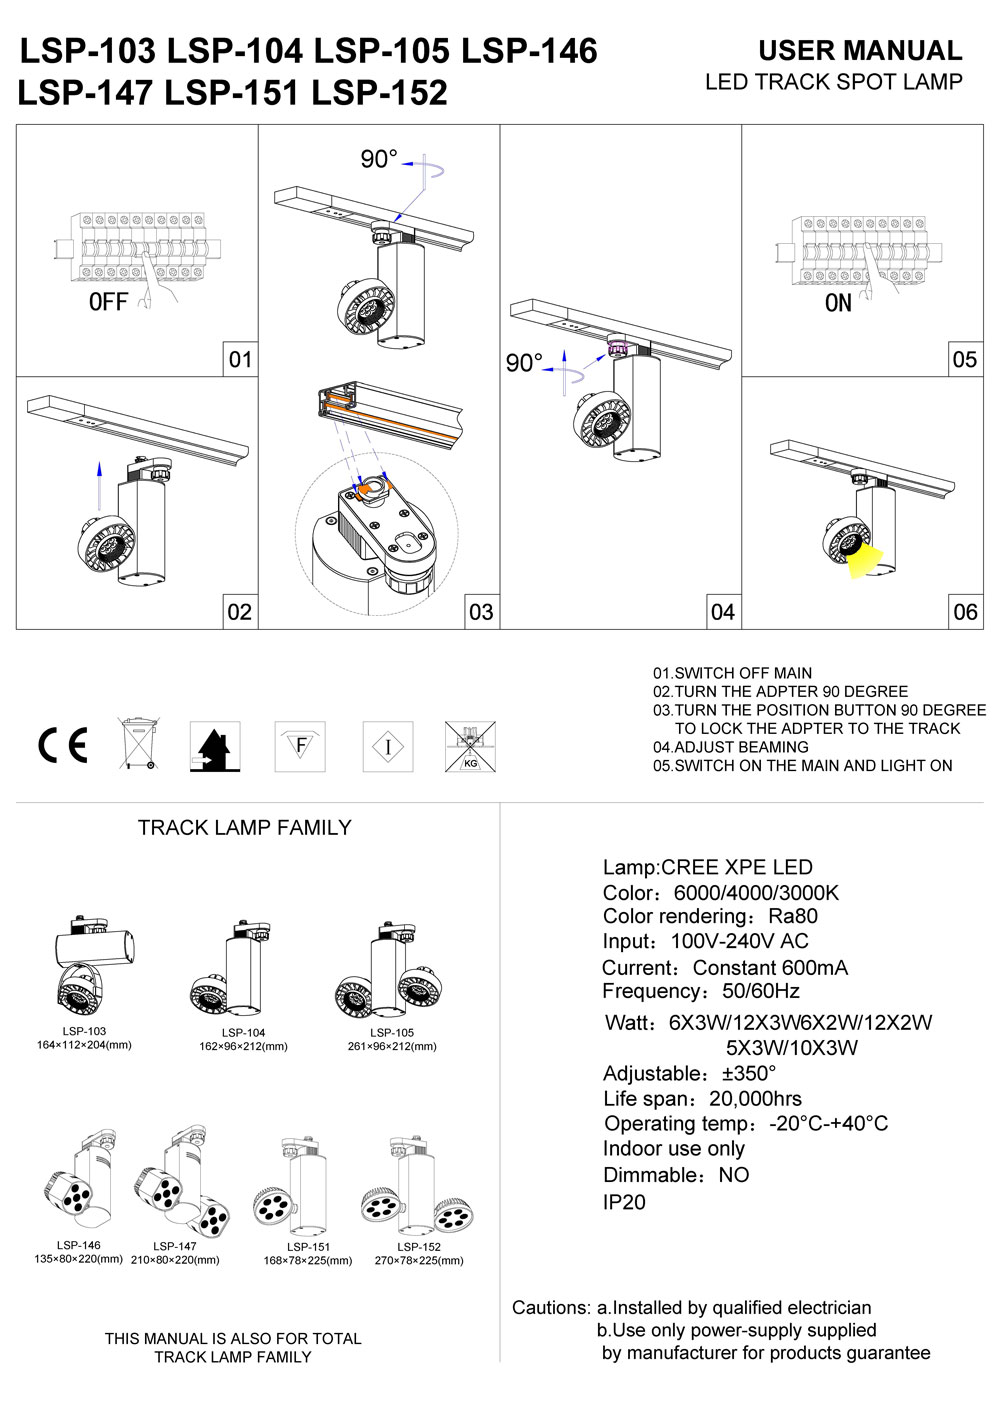 Leds 103 Turning Them On And Off